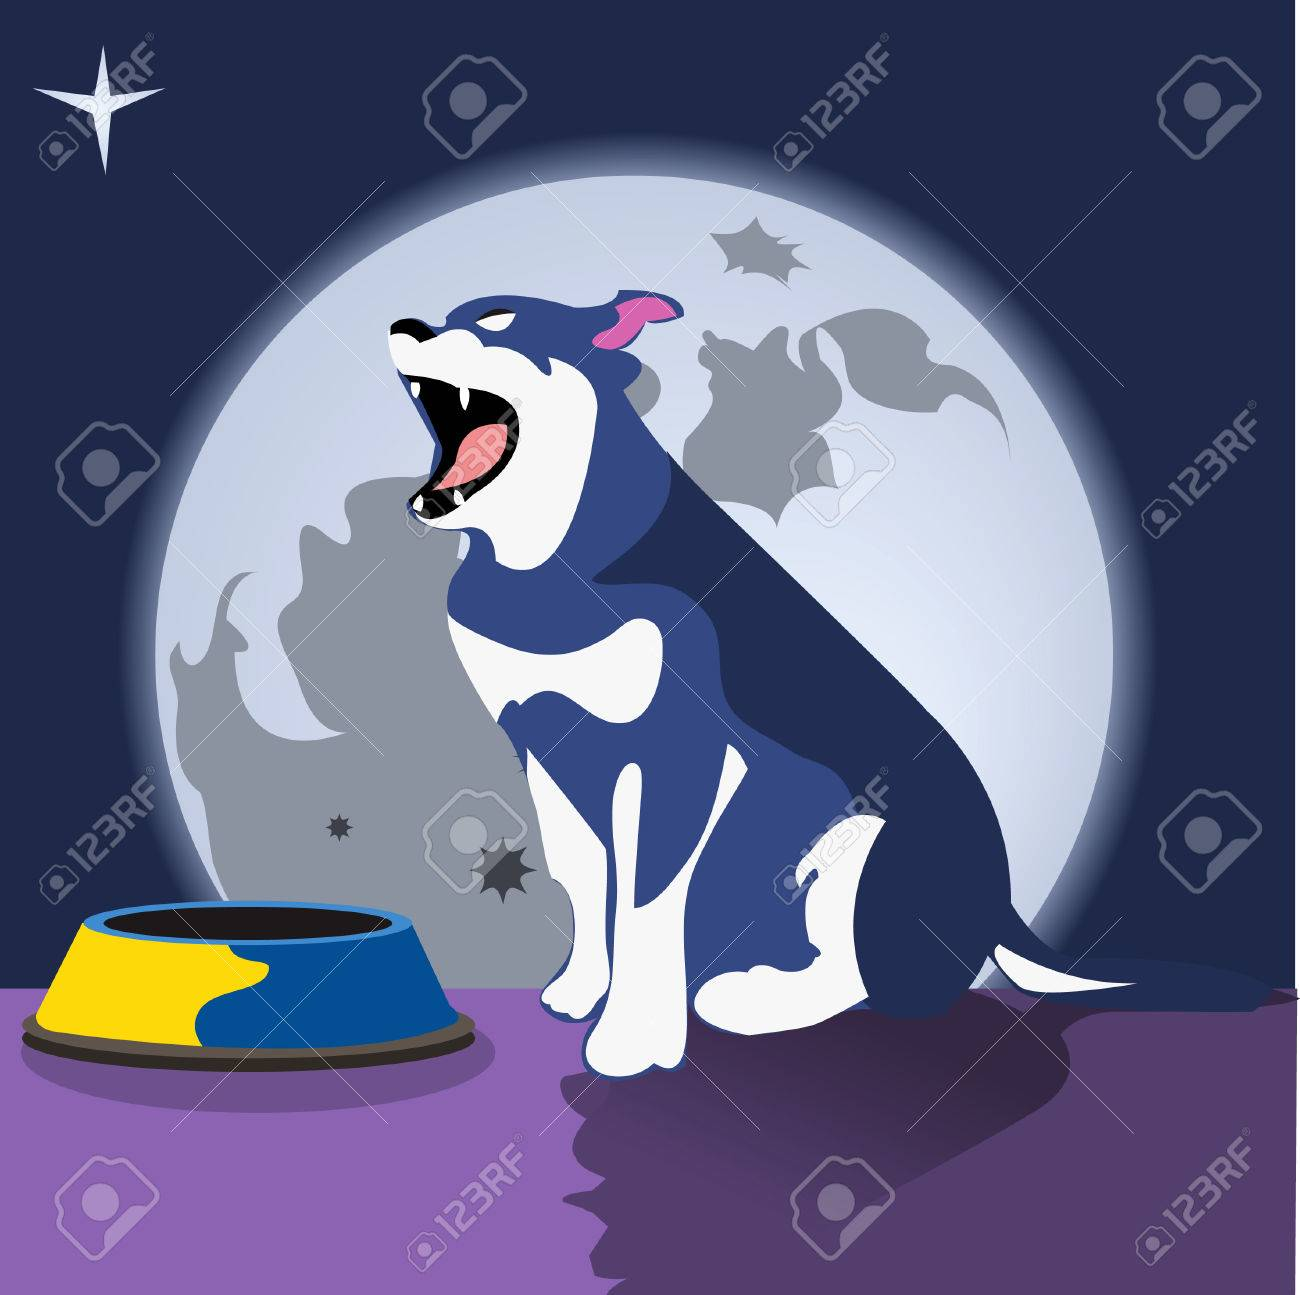 dog in front of the empty dish Stock Vector - 5237756